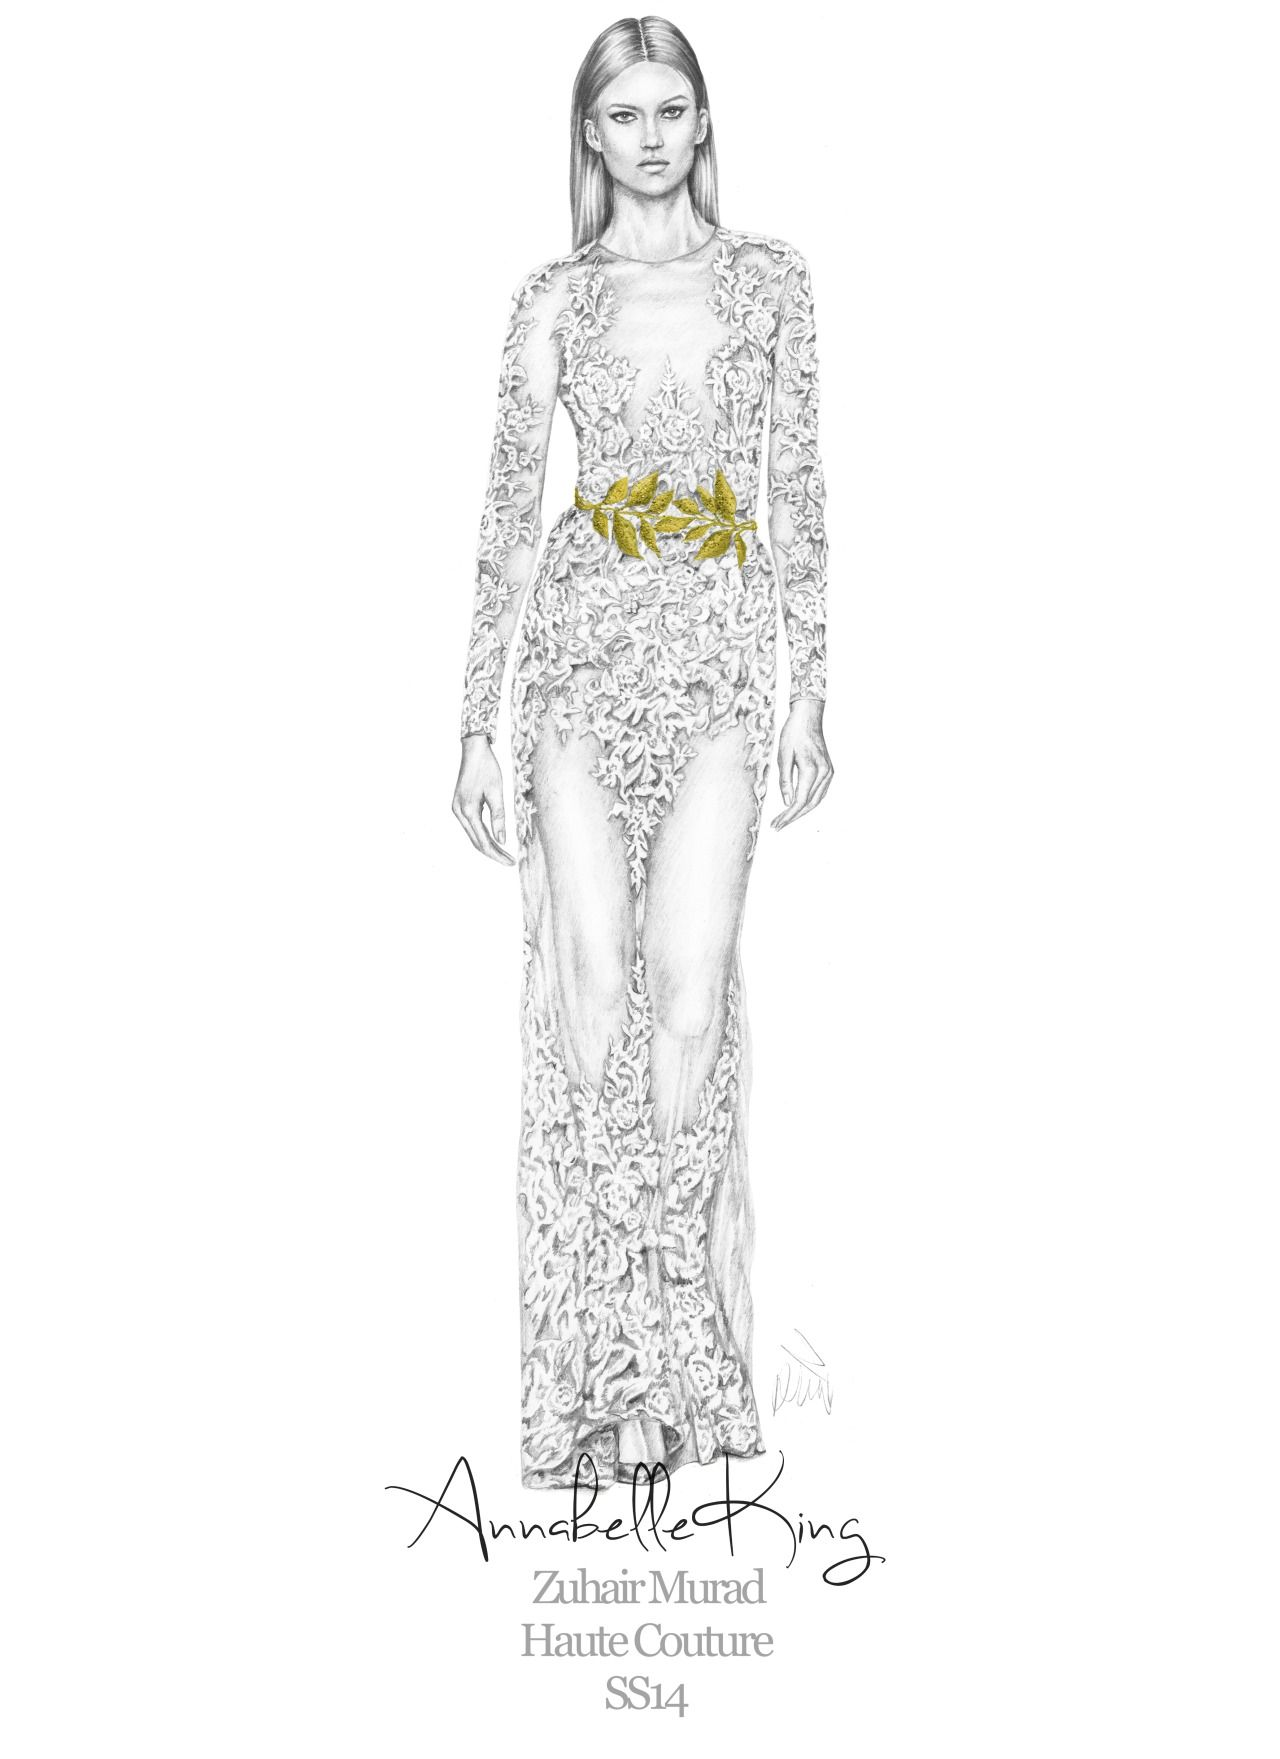 Zuhair Murad Haute Couture Spring Summer By Annabelle